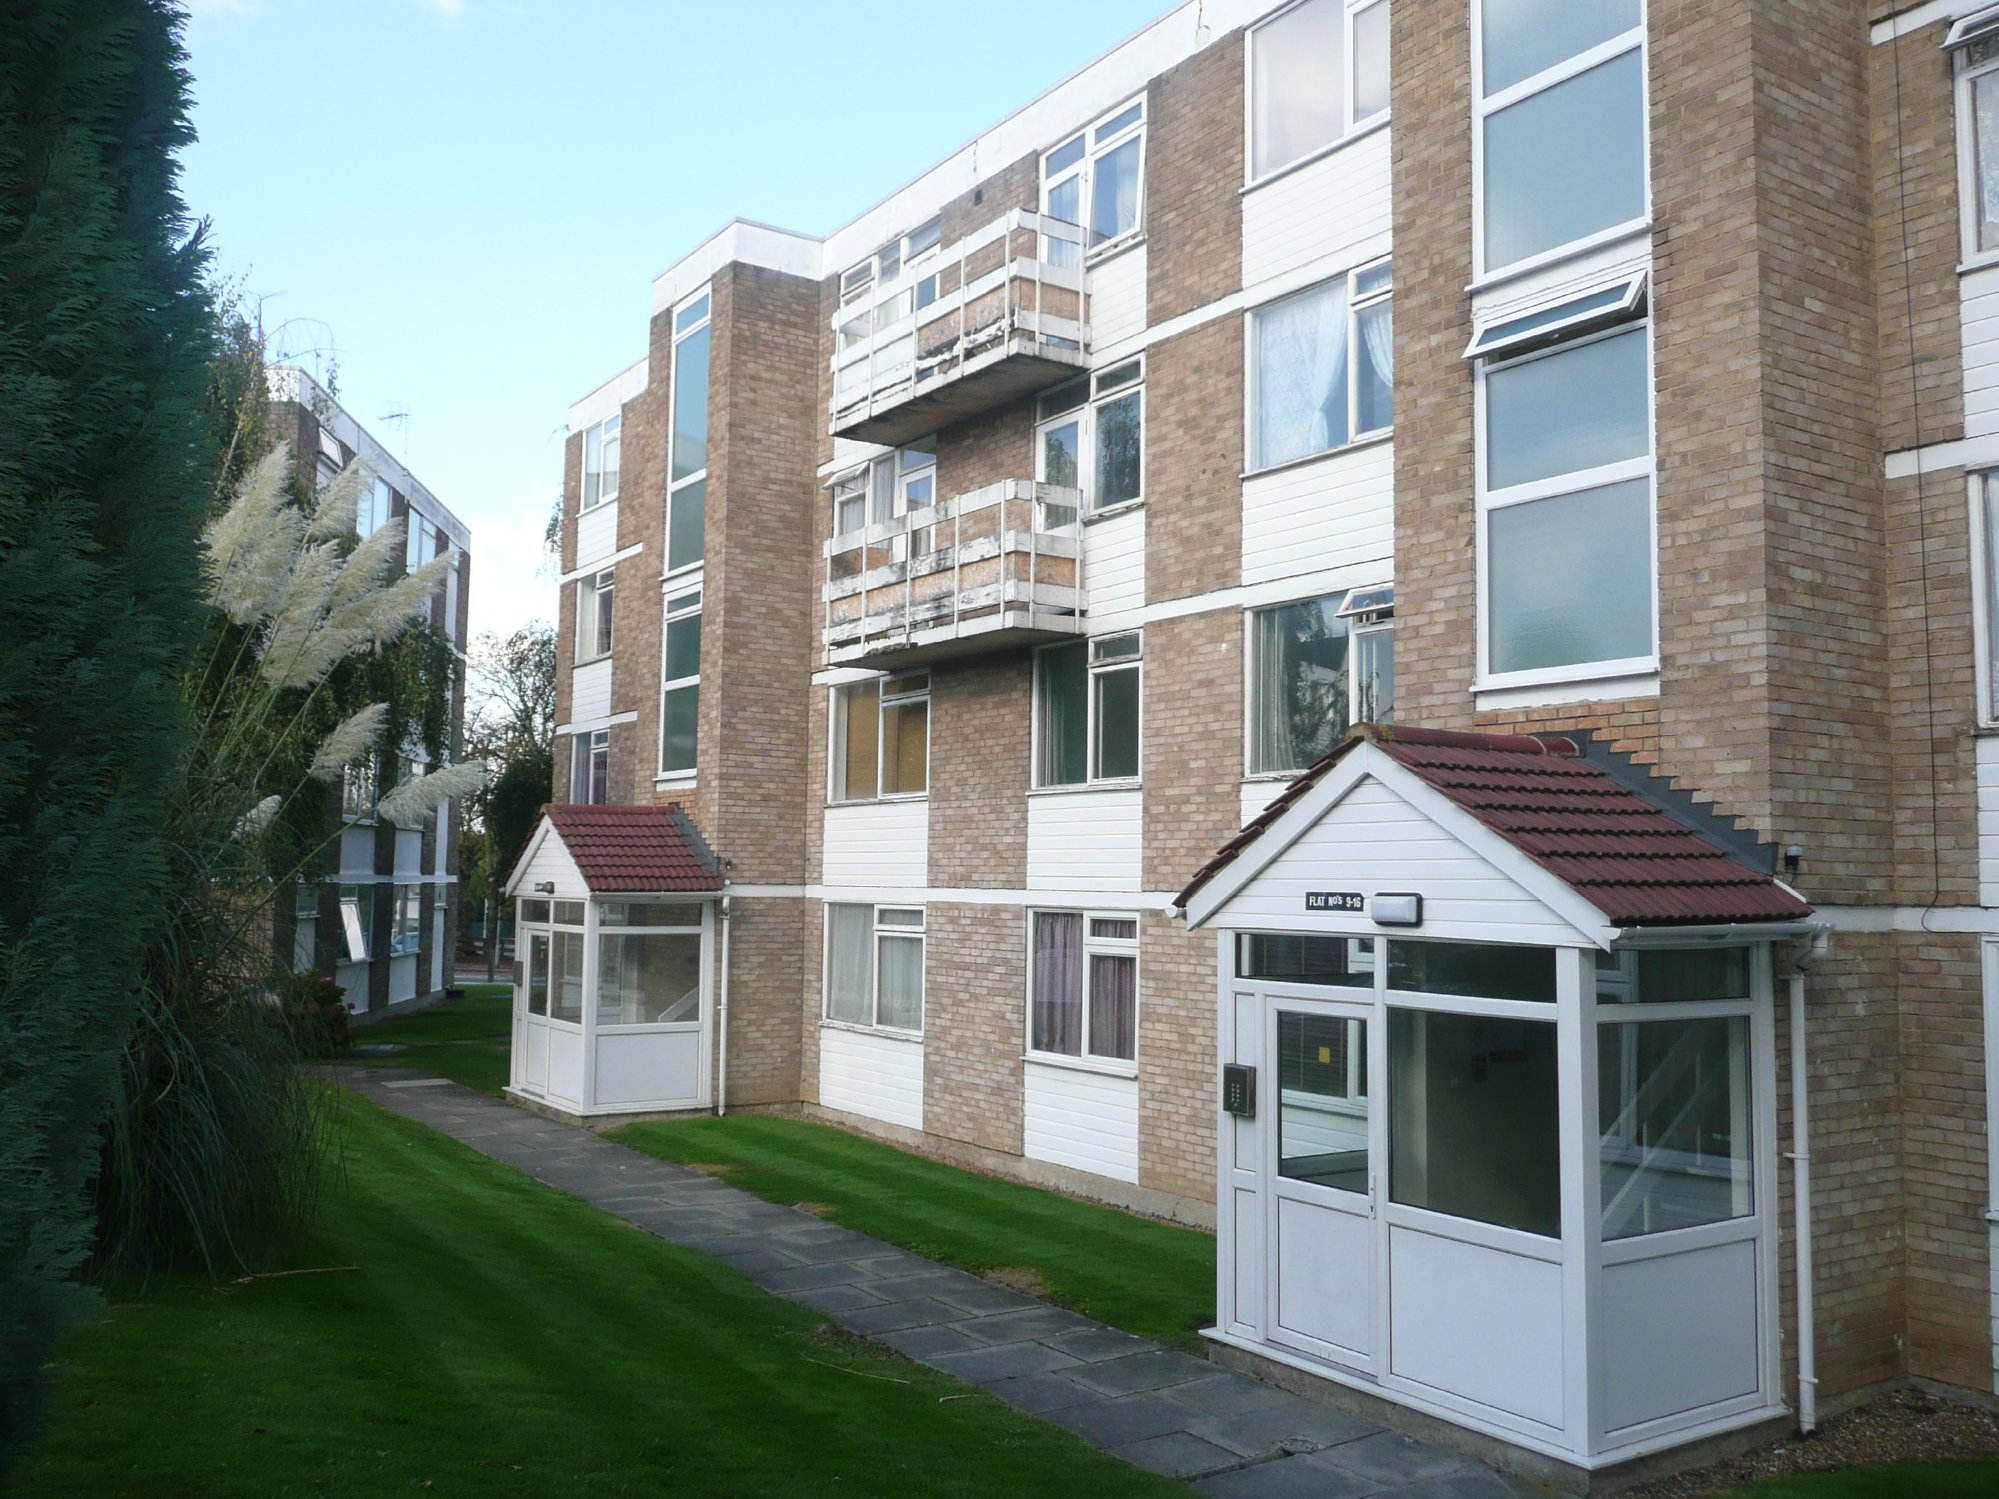 Pickwick Court, West Park, Mottingham, SE9